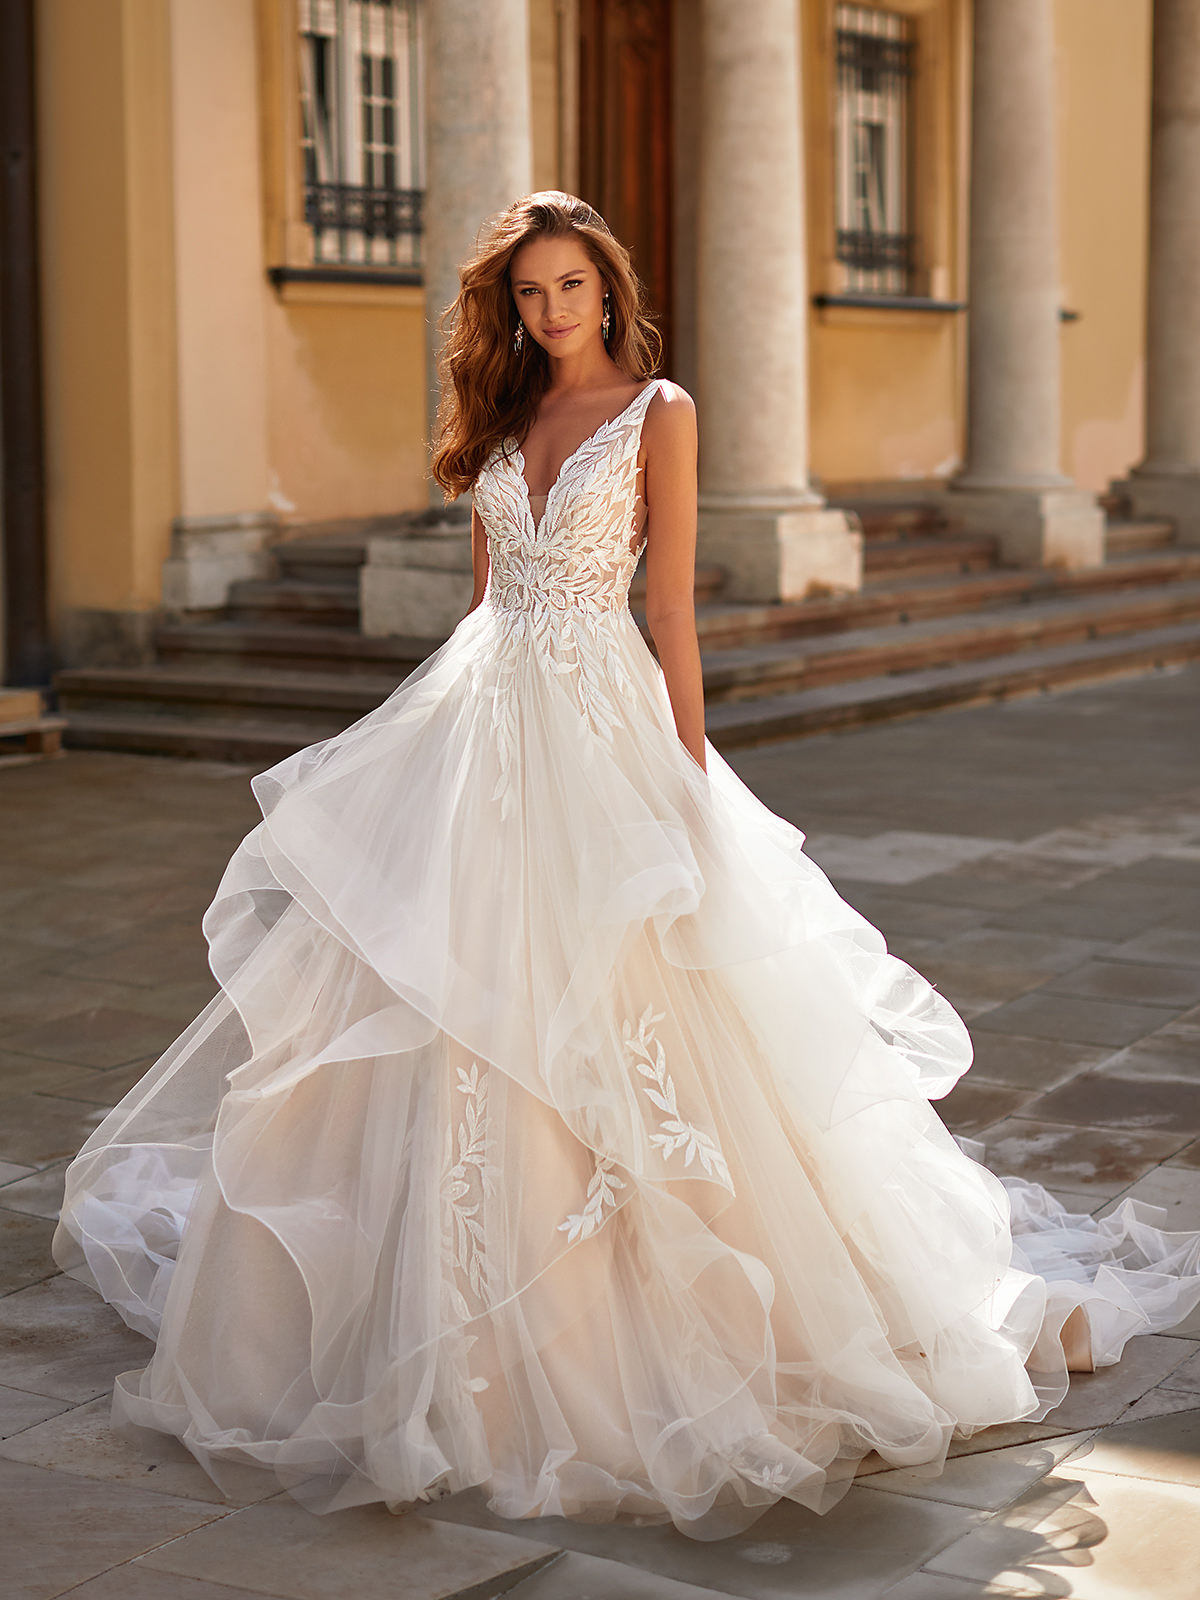 Designer Wedding Dresses by Moonlight Couture 2022 Bridal Collection - H1484